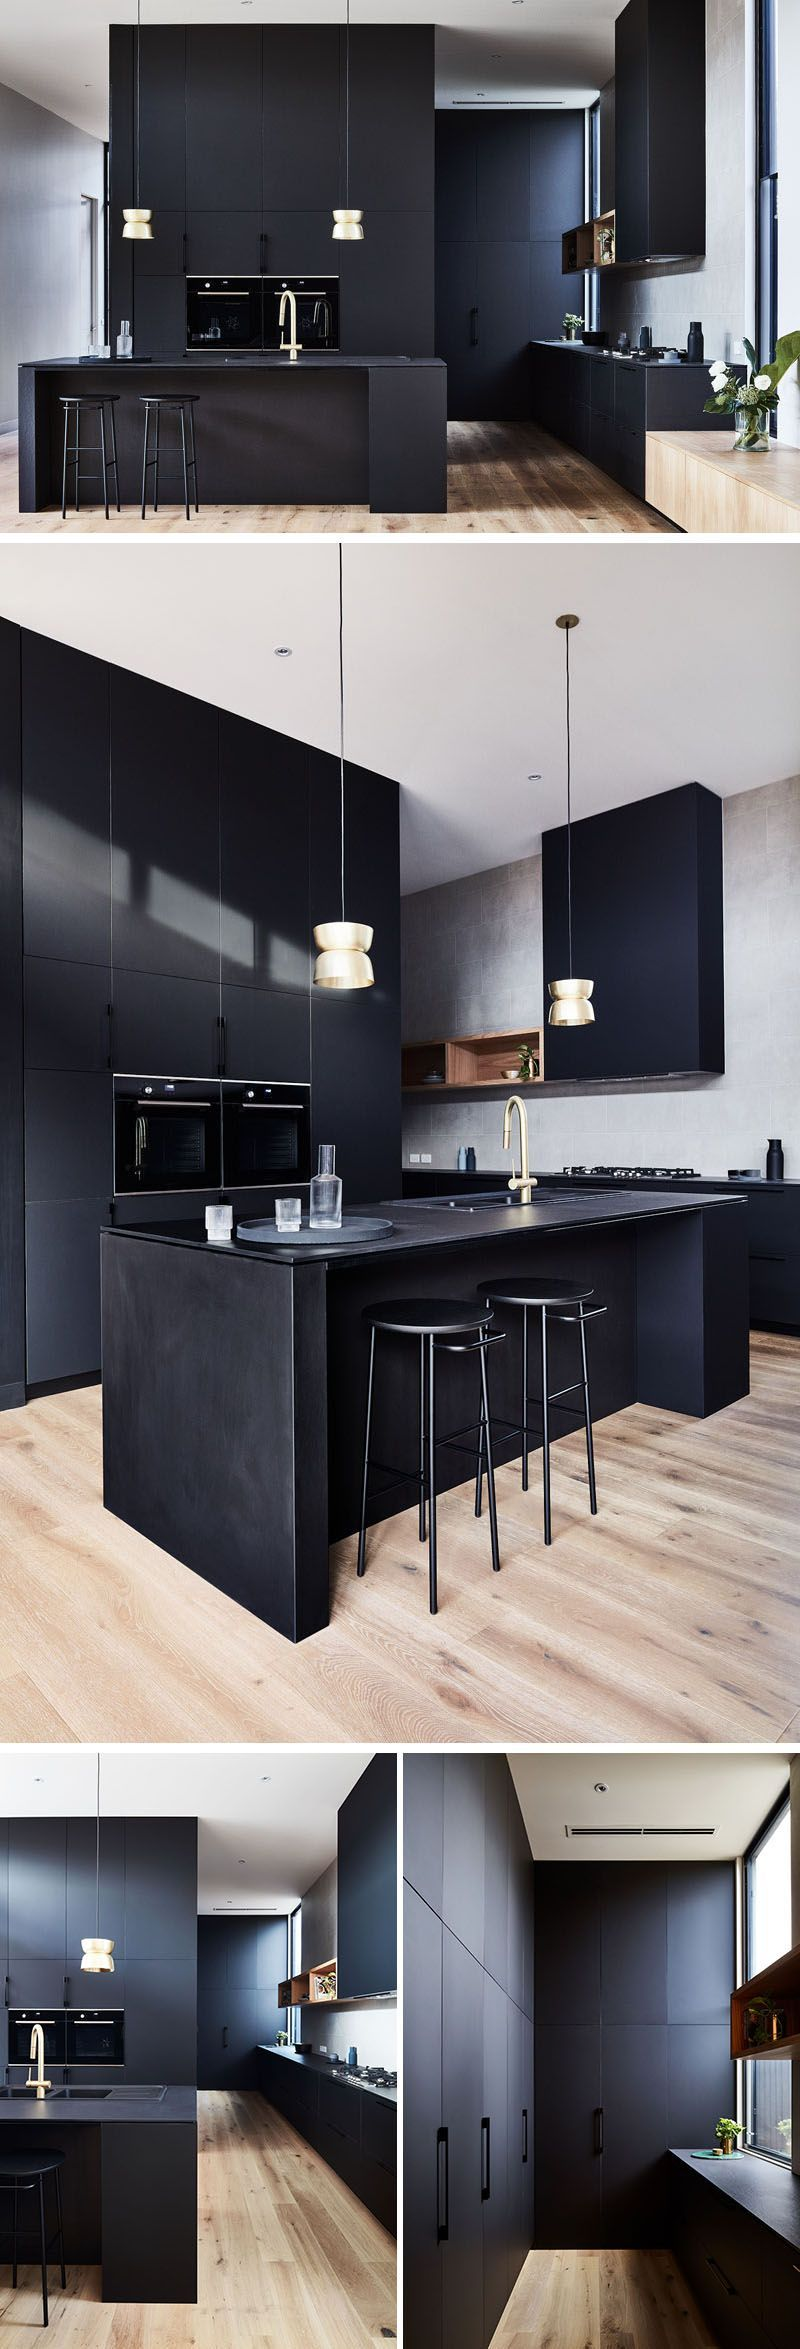 A matte black kitchen with minimal hardware makes a